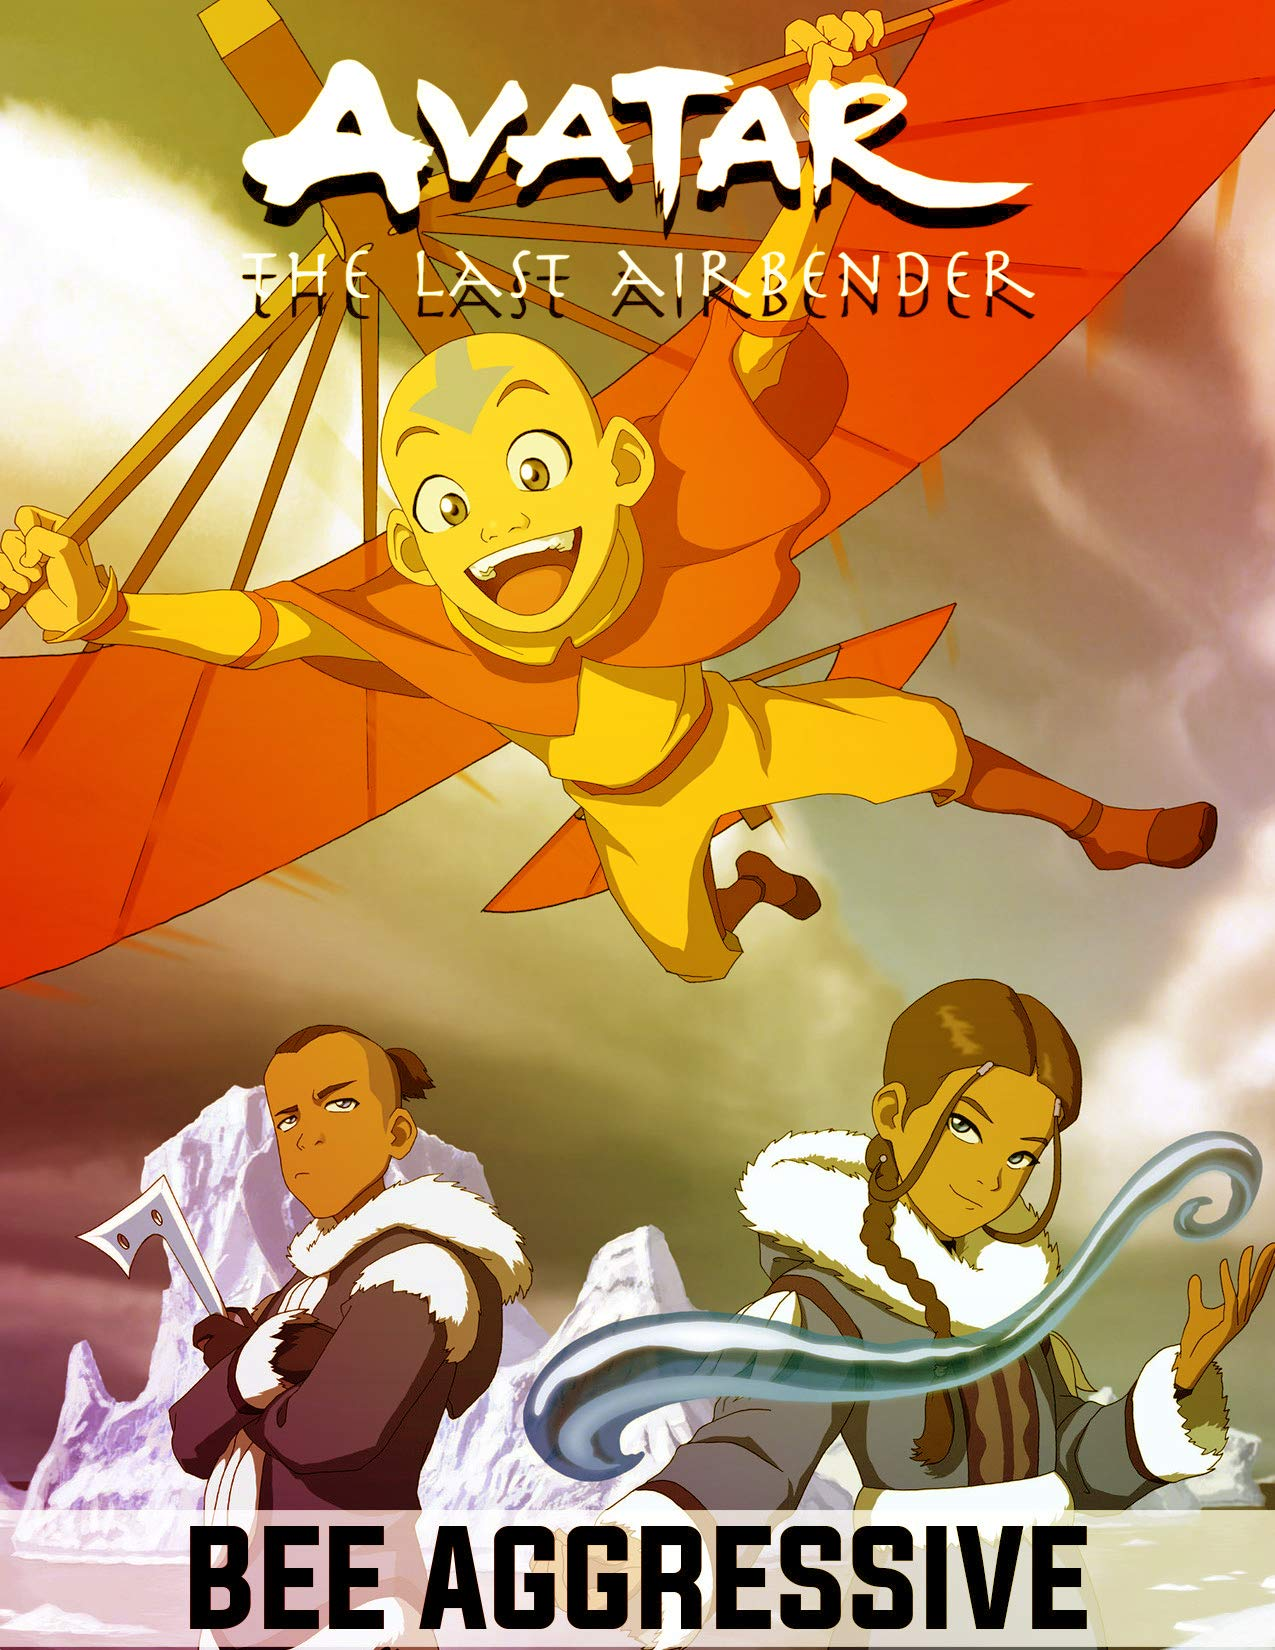 Avatar: The Last Airbender Nickelodeon Avatar Comics Books Collection American action adventure fantasy Fan